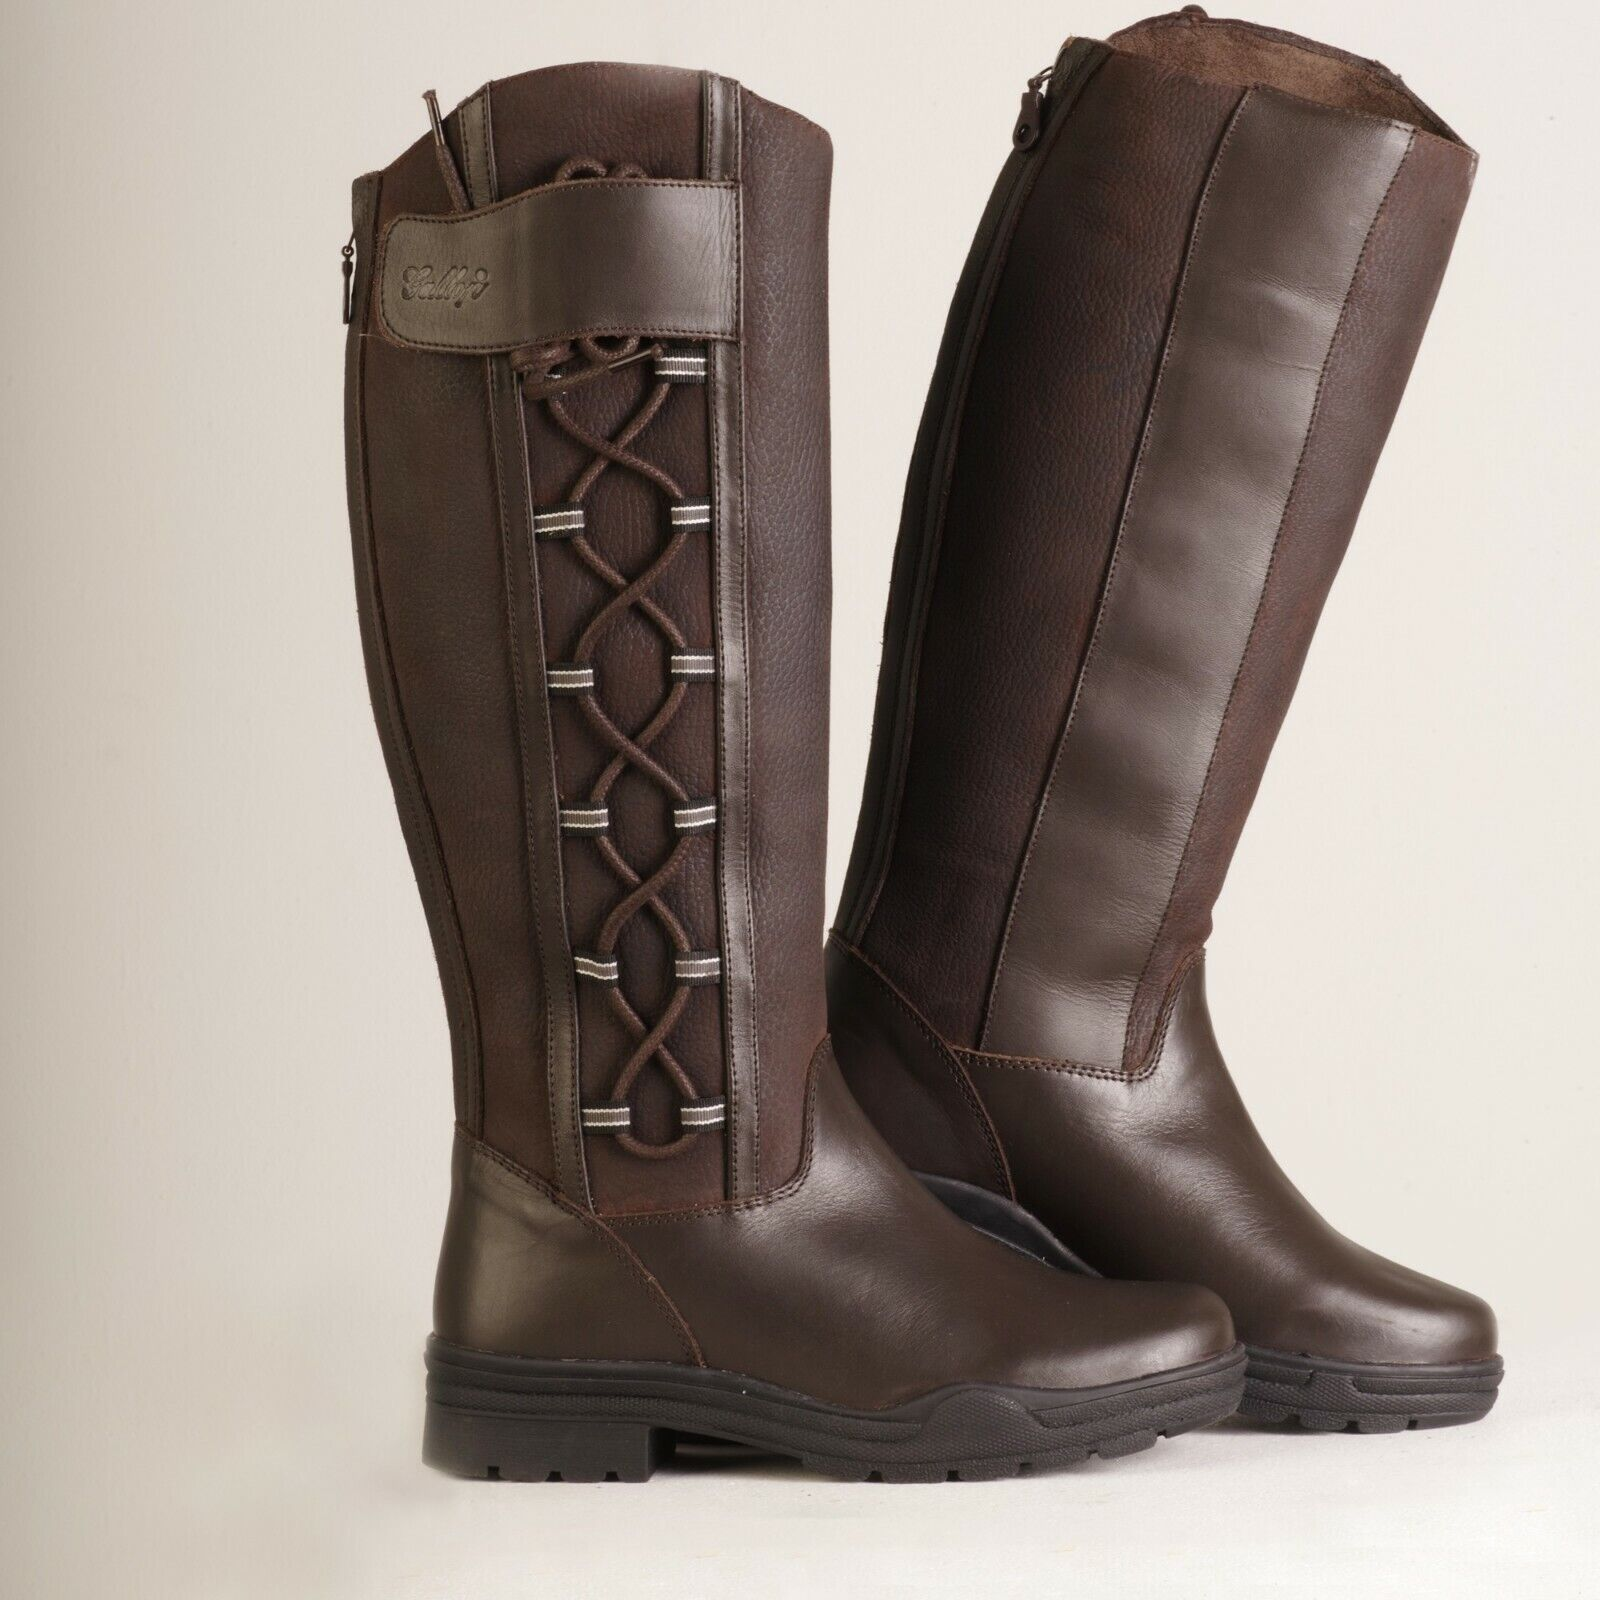 nouveau 2019 Gateley Long cuir marron Equestrian Country bottes for Horses and Dogs